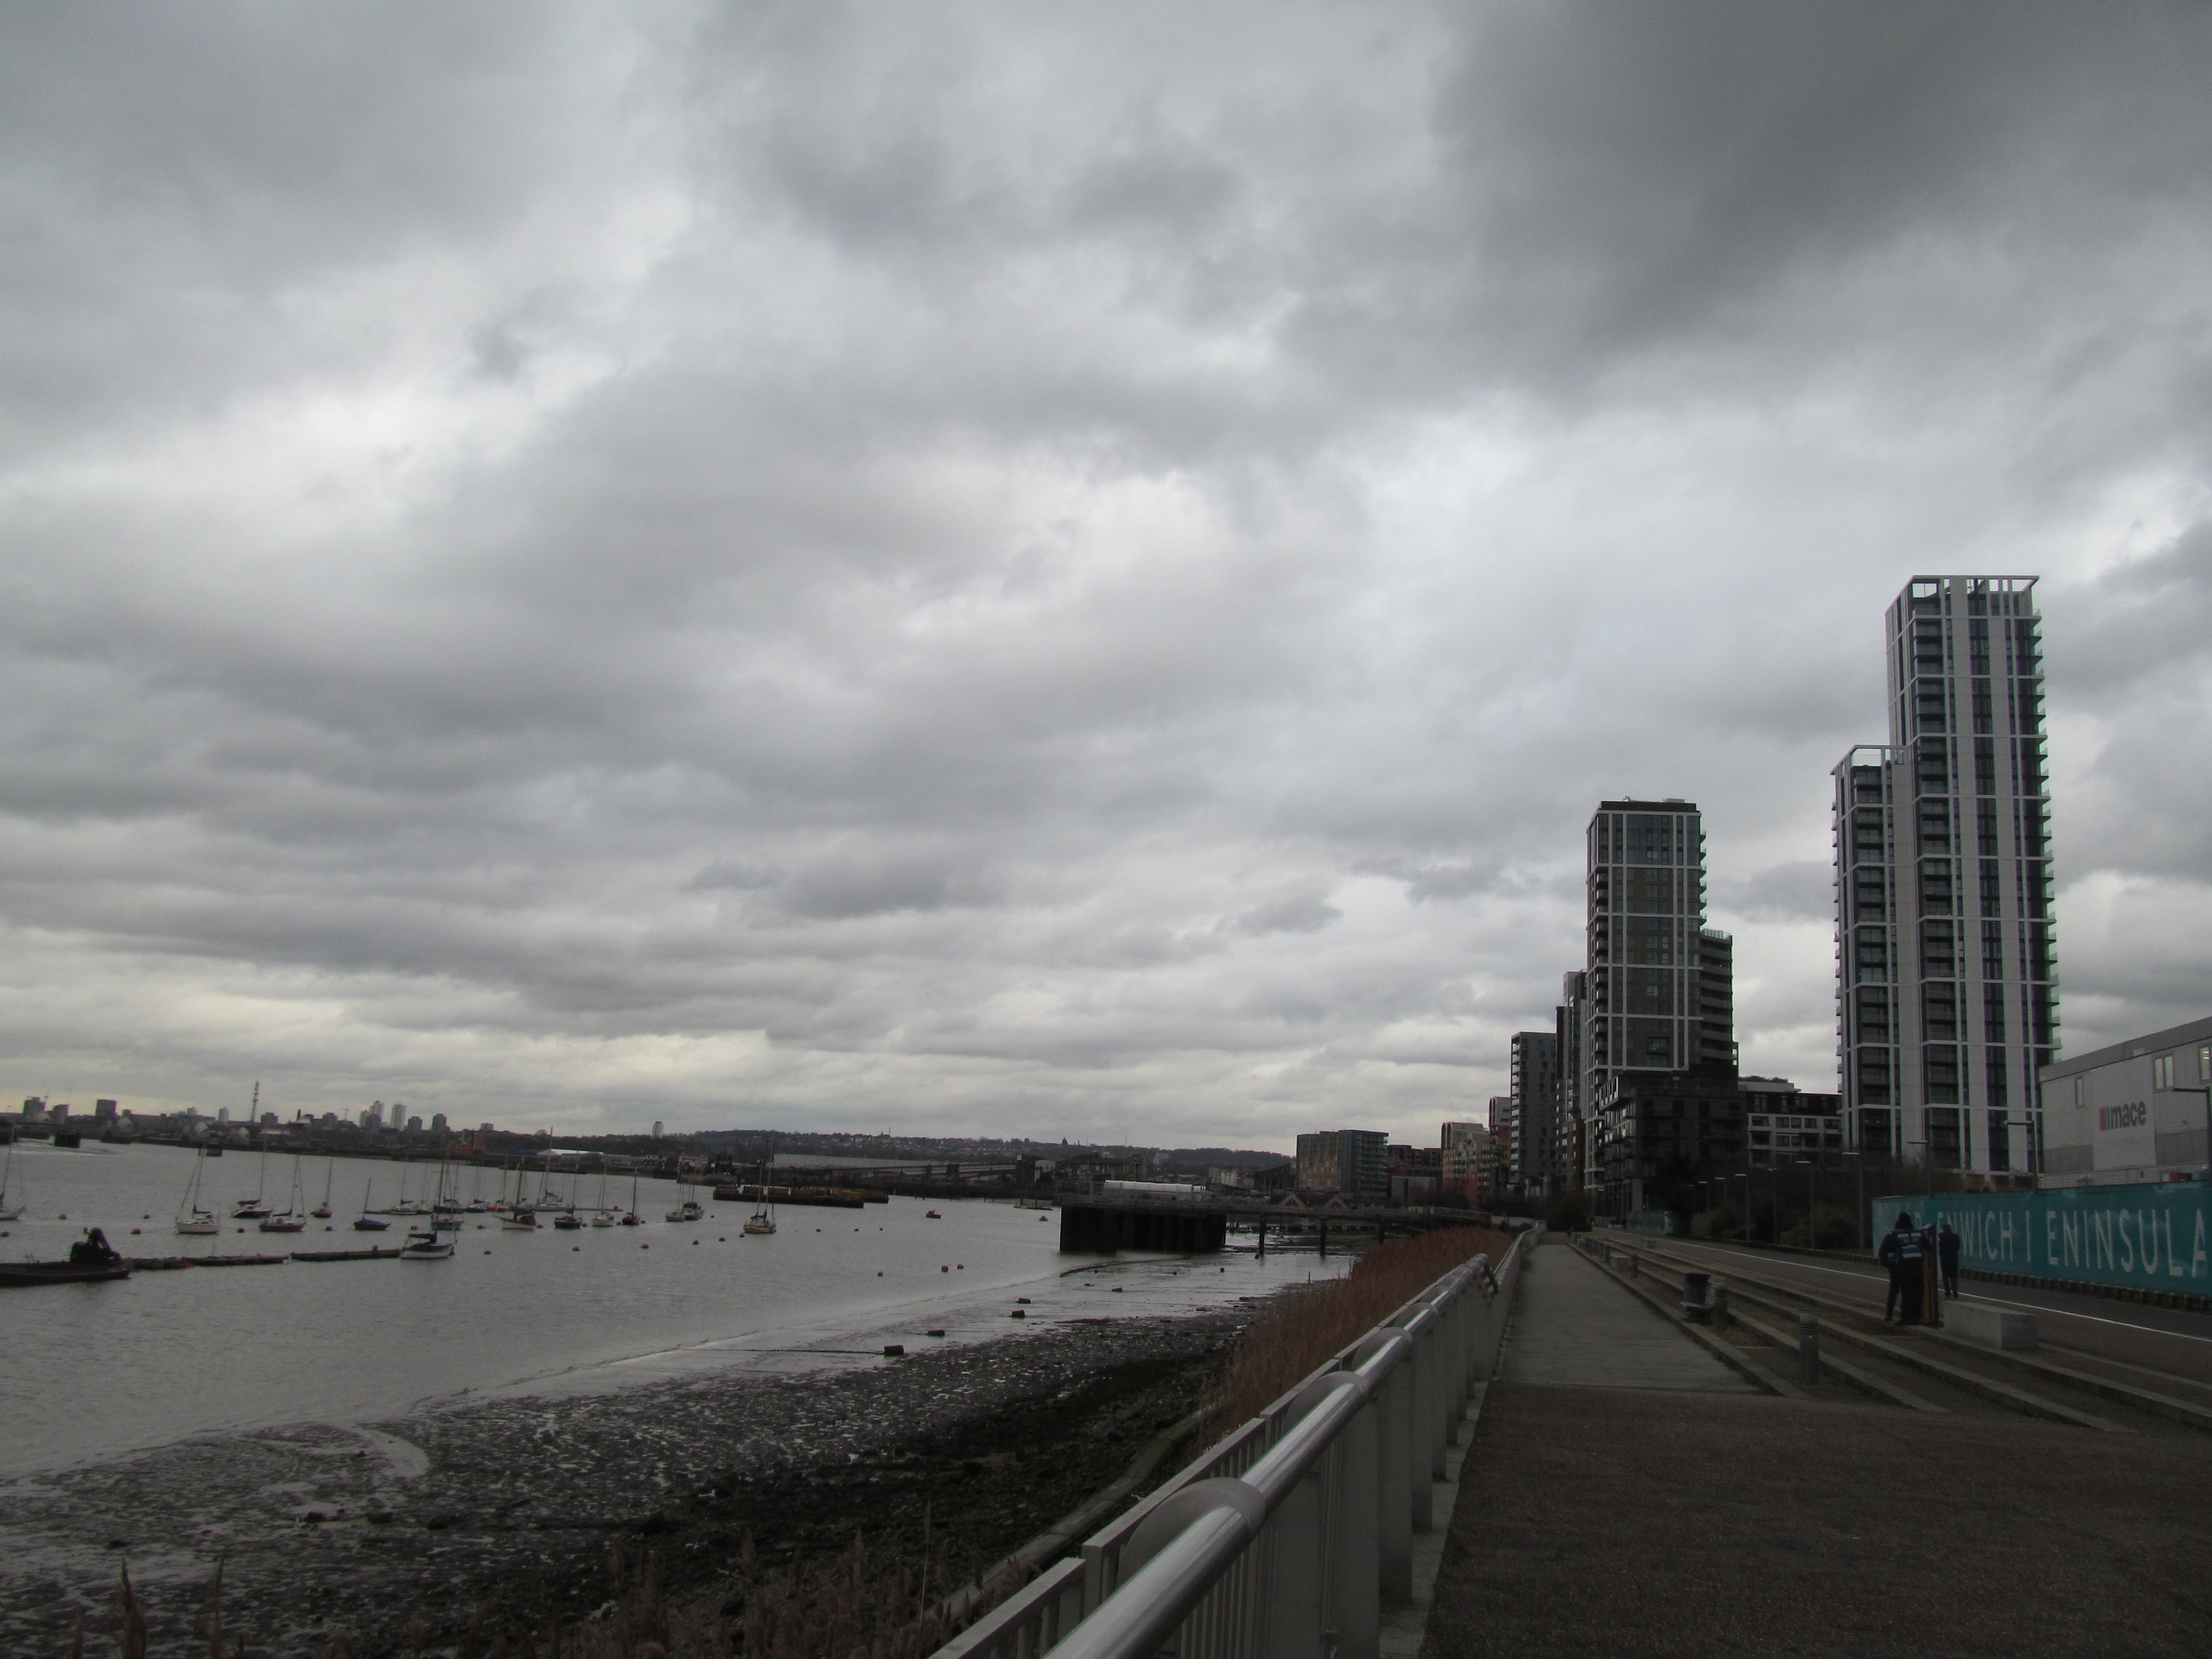 Looking at Greenwich Peninsula Part 3: New towers and schools